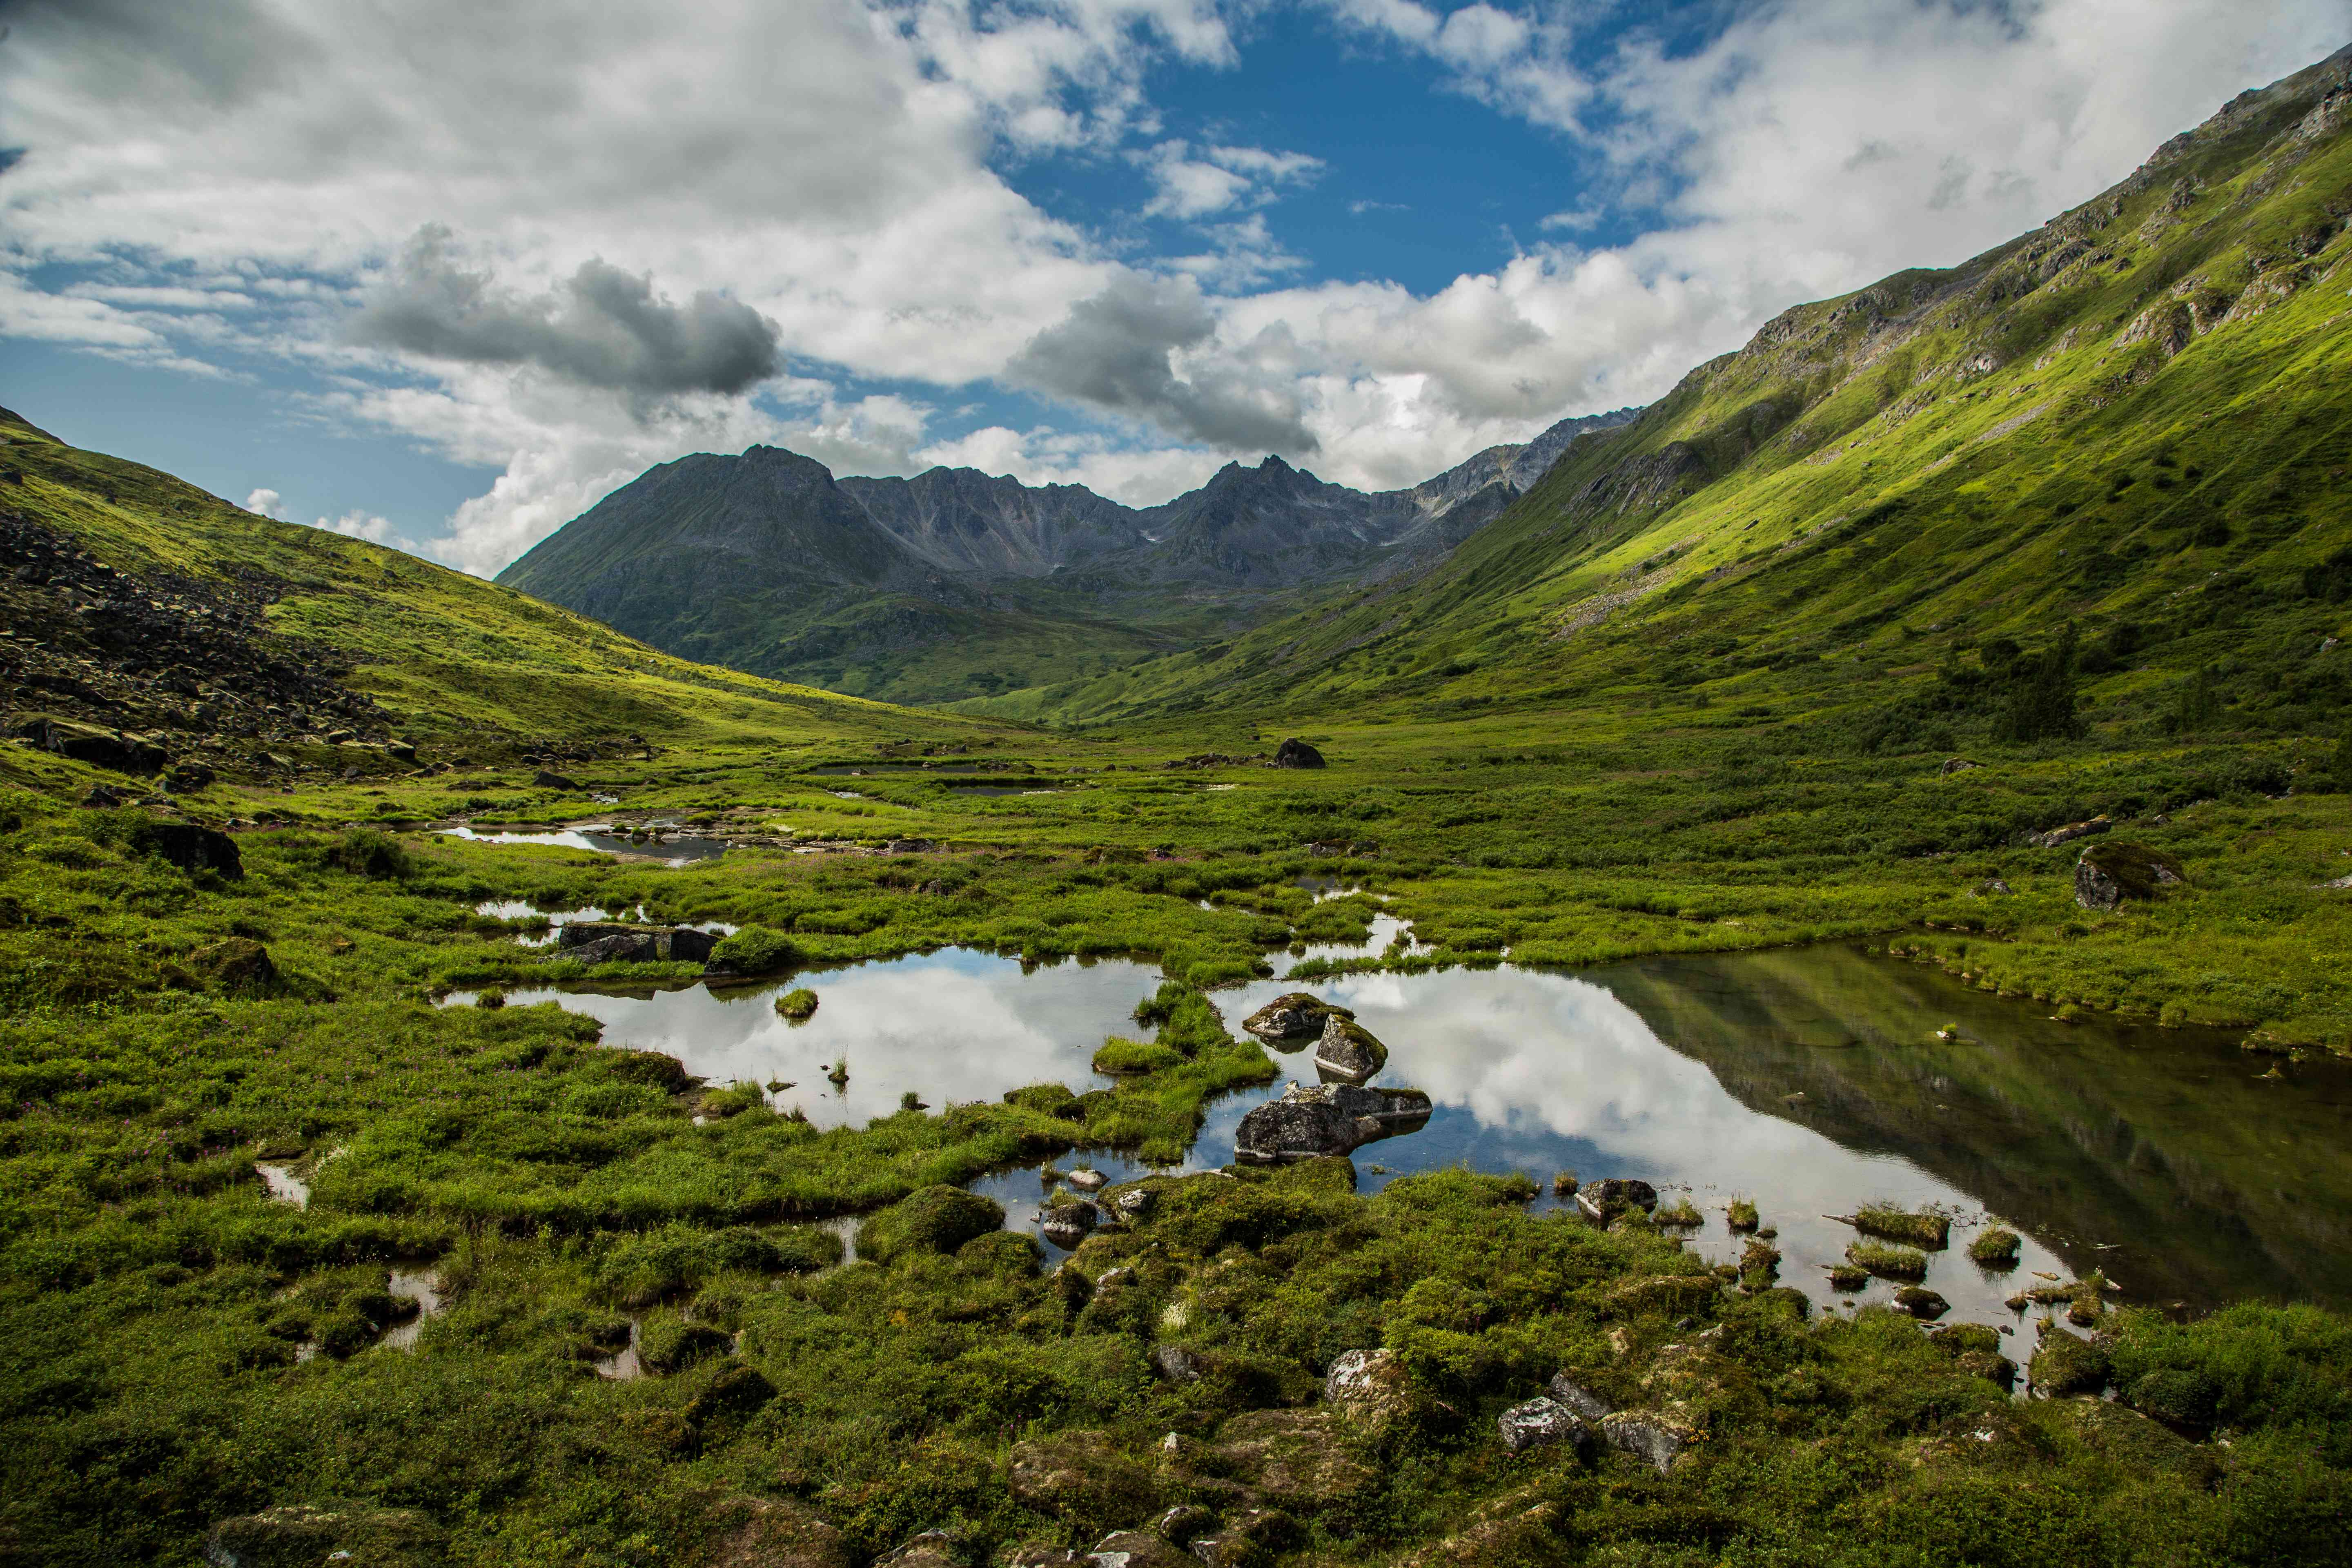 The view from Hatcher Pass